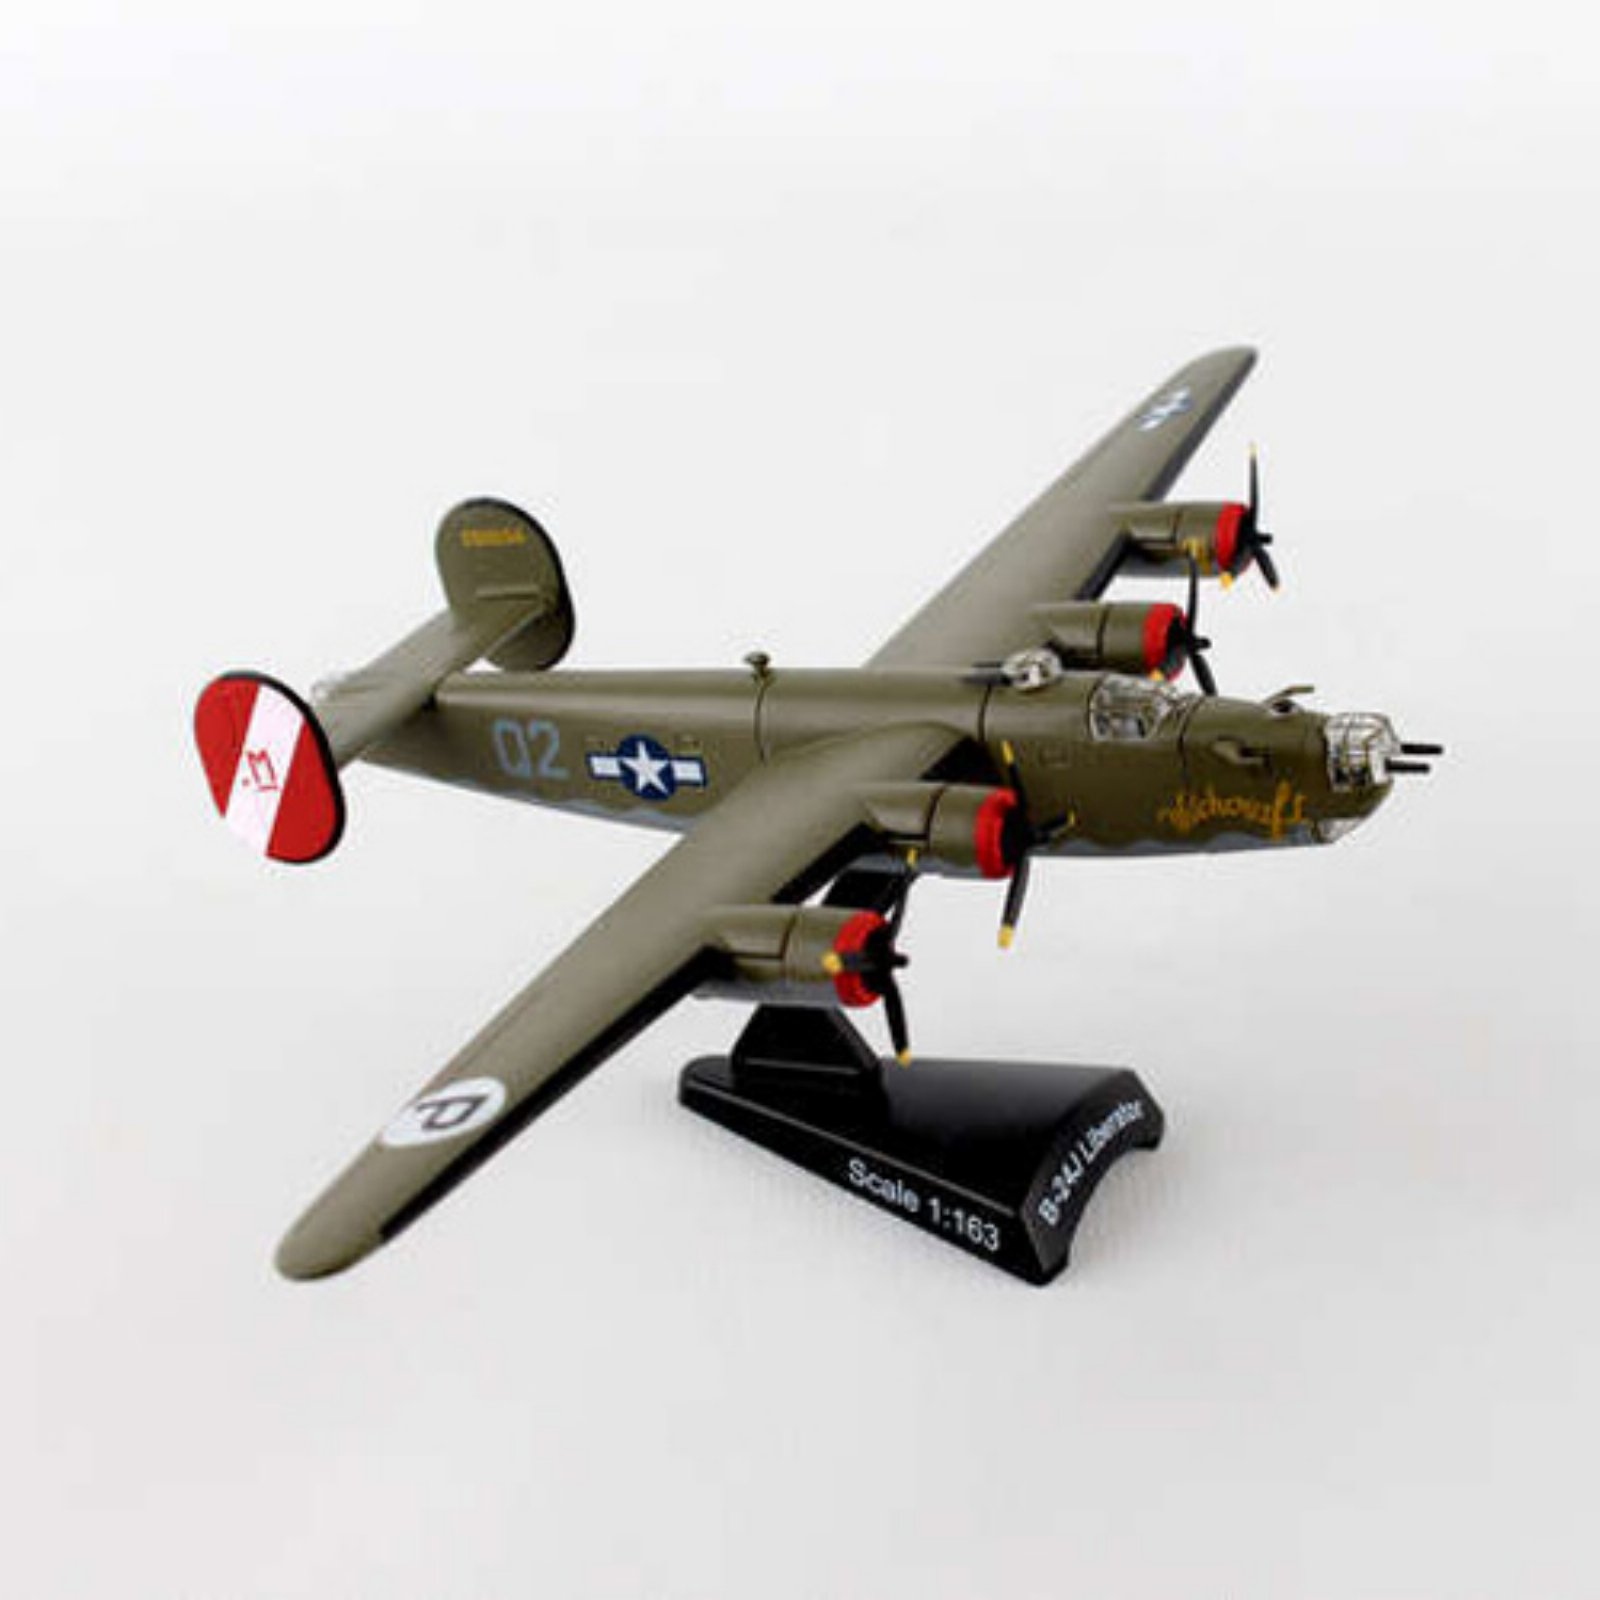 Postage Stamp B-24 Liberator Witchcraft Model Airplane by DARON